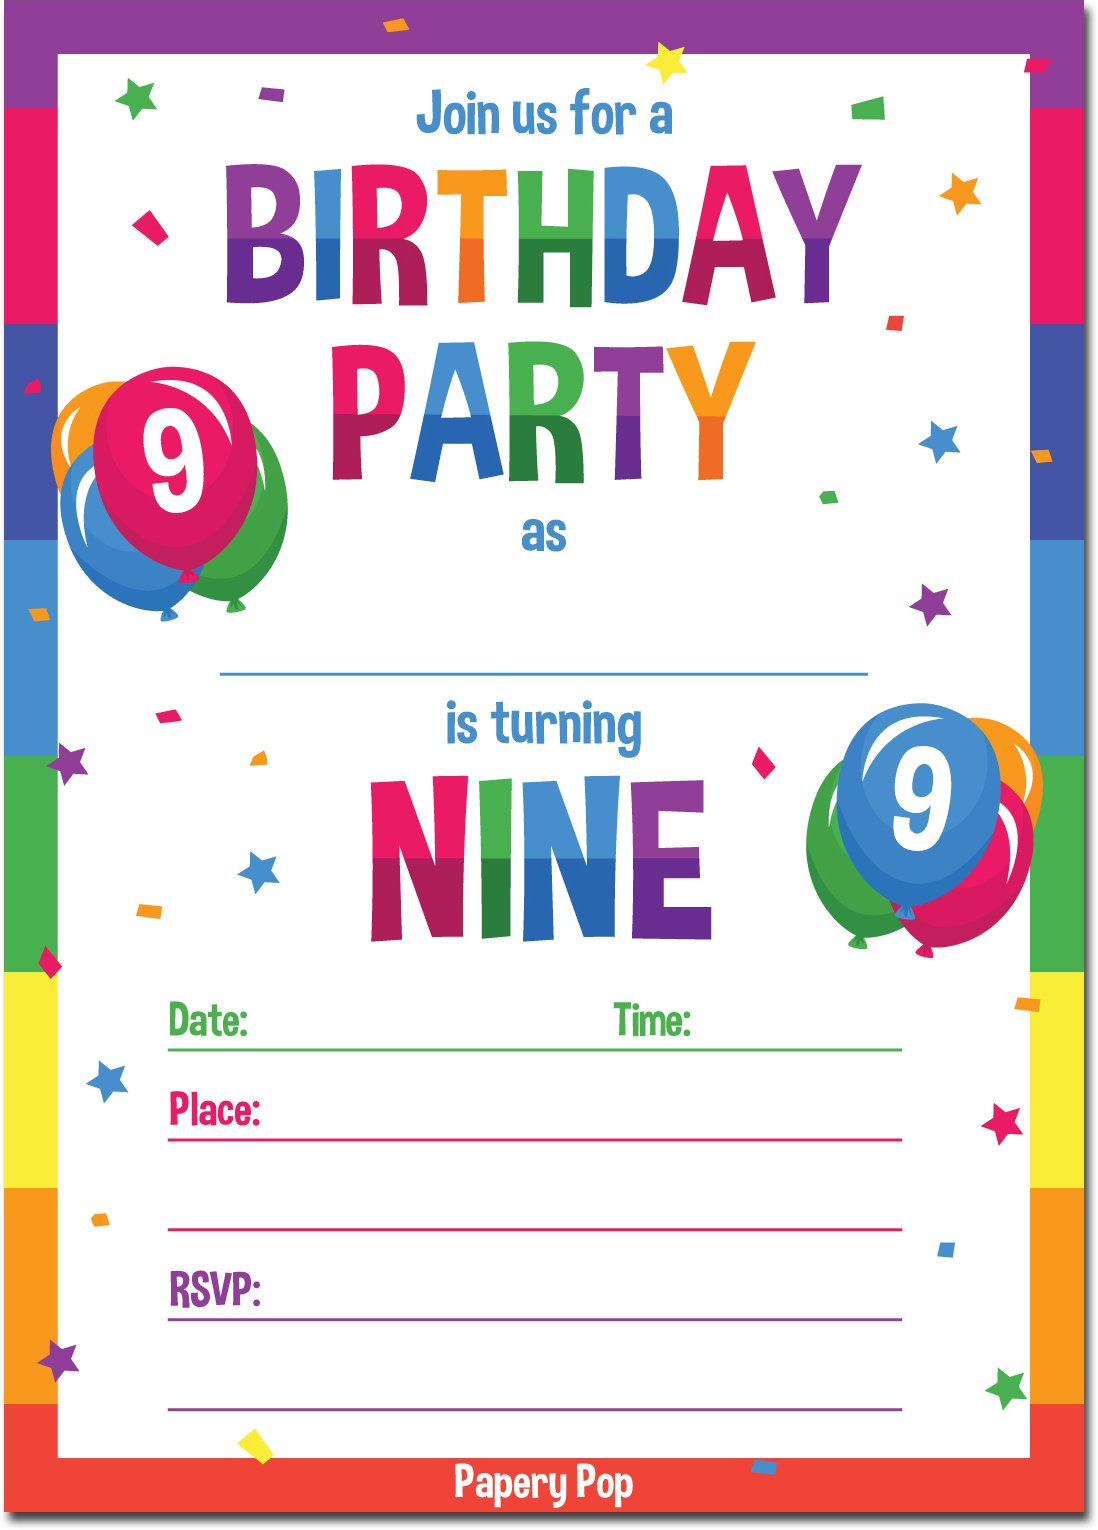 9th Birthday Party Invitations with Envelopes (15 Count) - 9 Year Old Kids Birthday Invitations for Boys or Girls - Rainbow